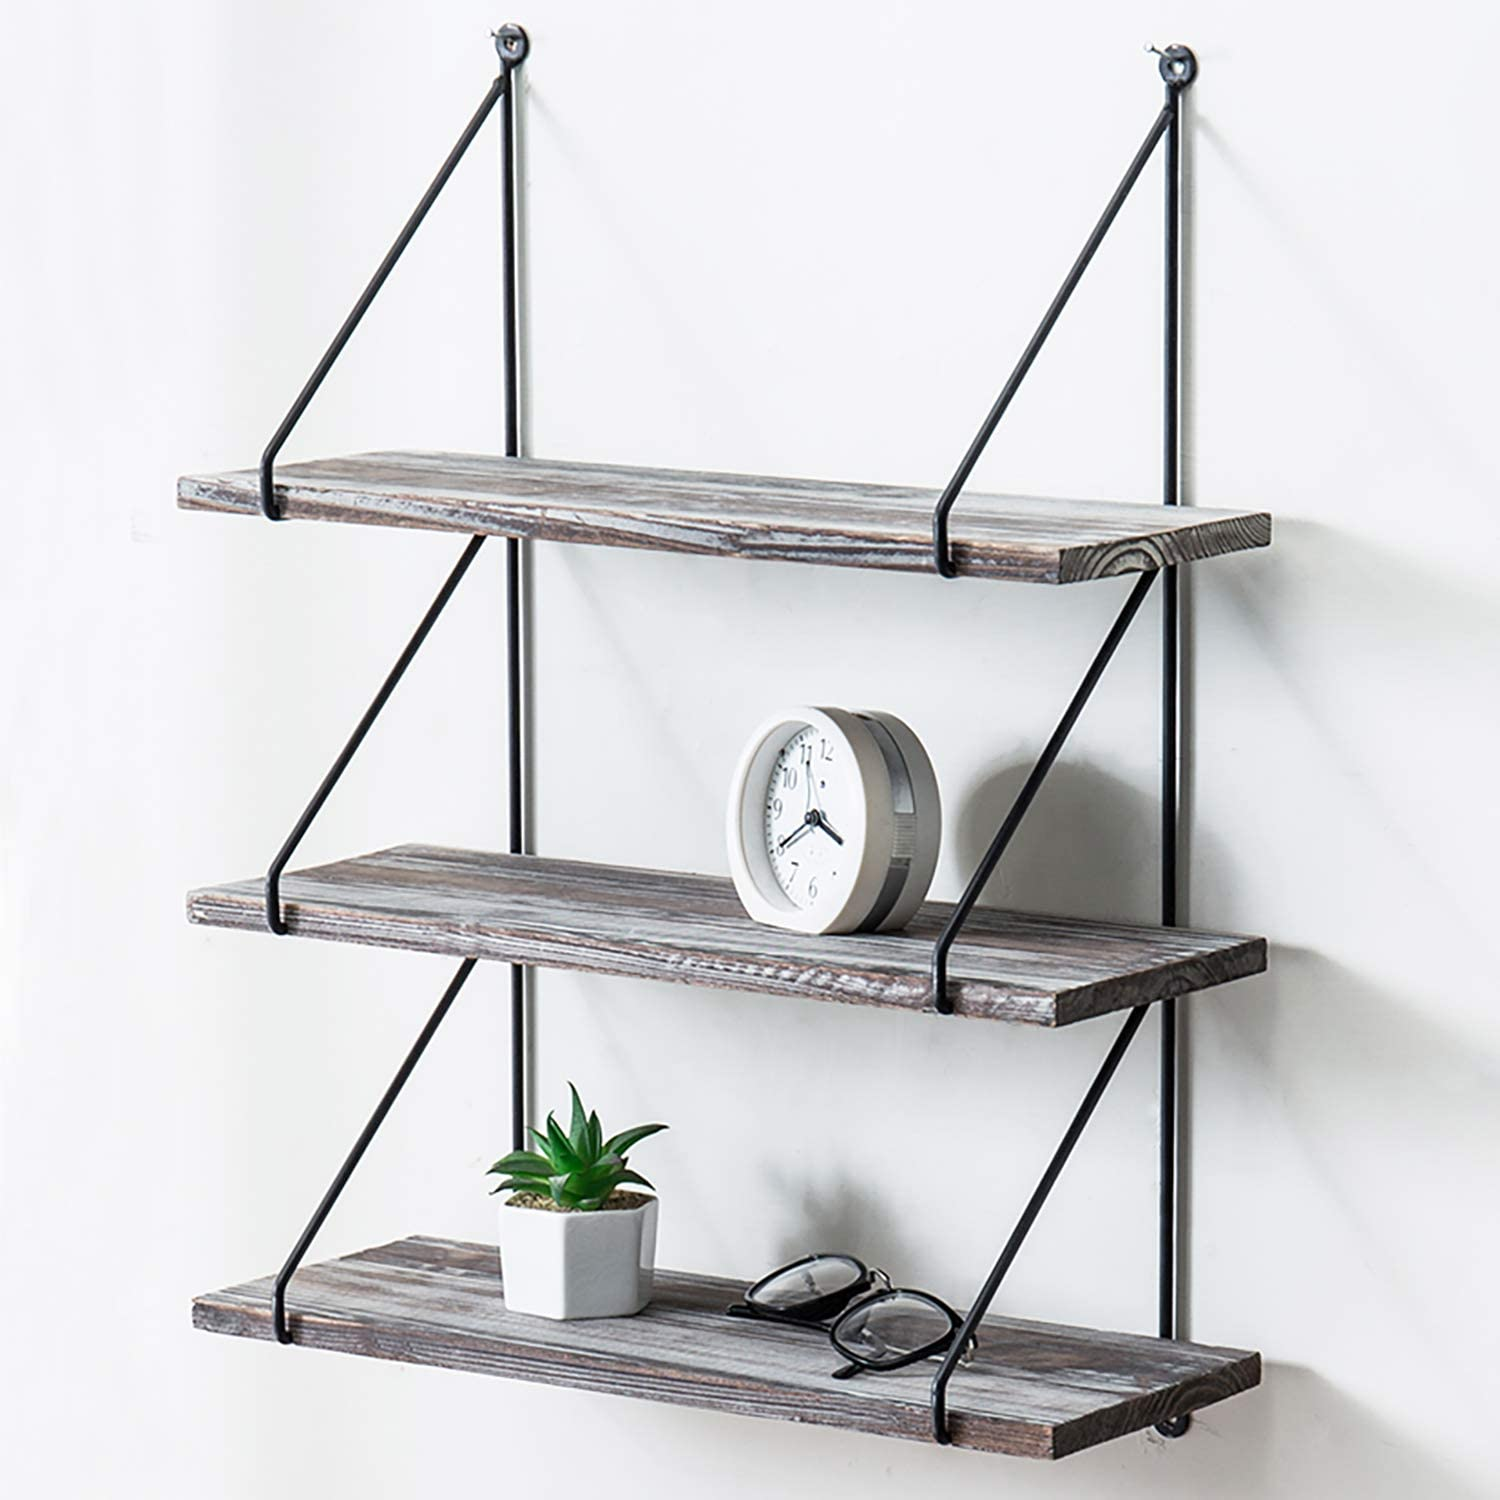 MyGift 3-Tier Torched Wood & Black Metal Wire Wall Mounted Display Shelves